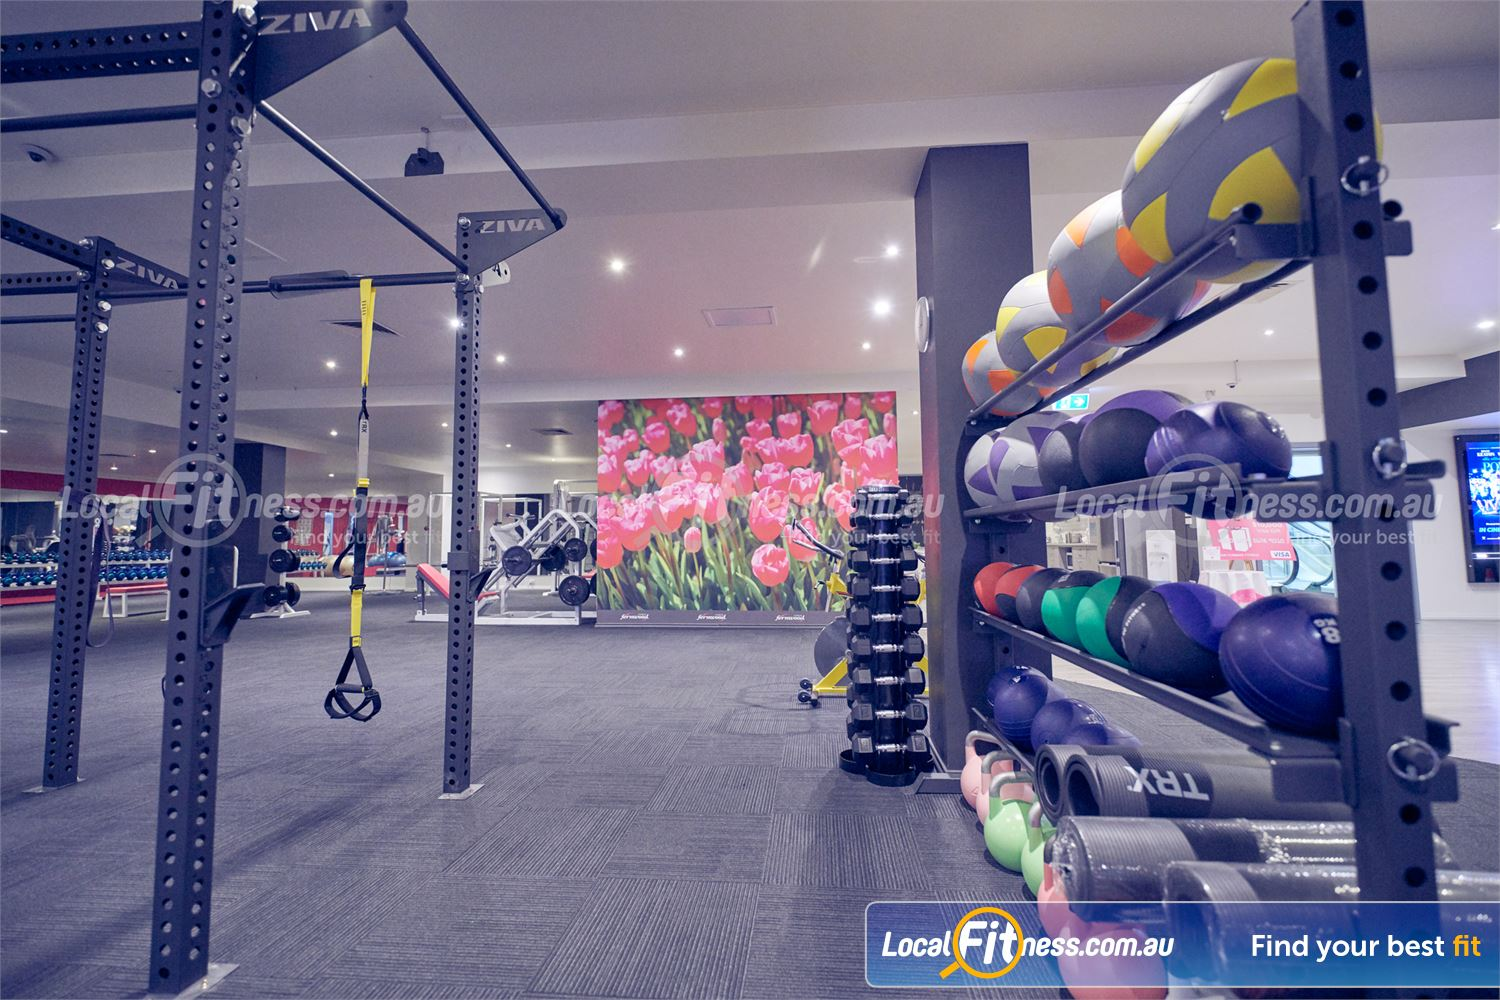 Fernwood Fitness Bulleen Our functional area includes kettlebells, TRX, wall balls and more.